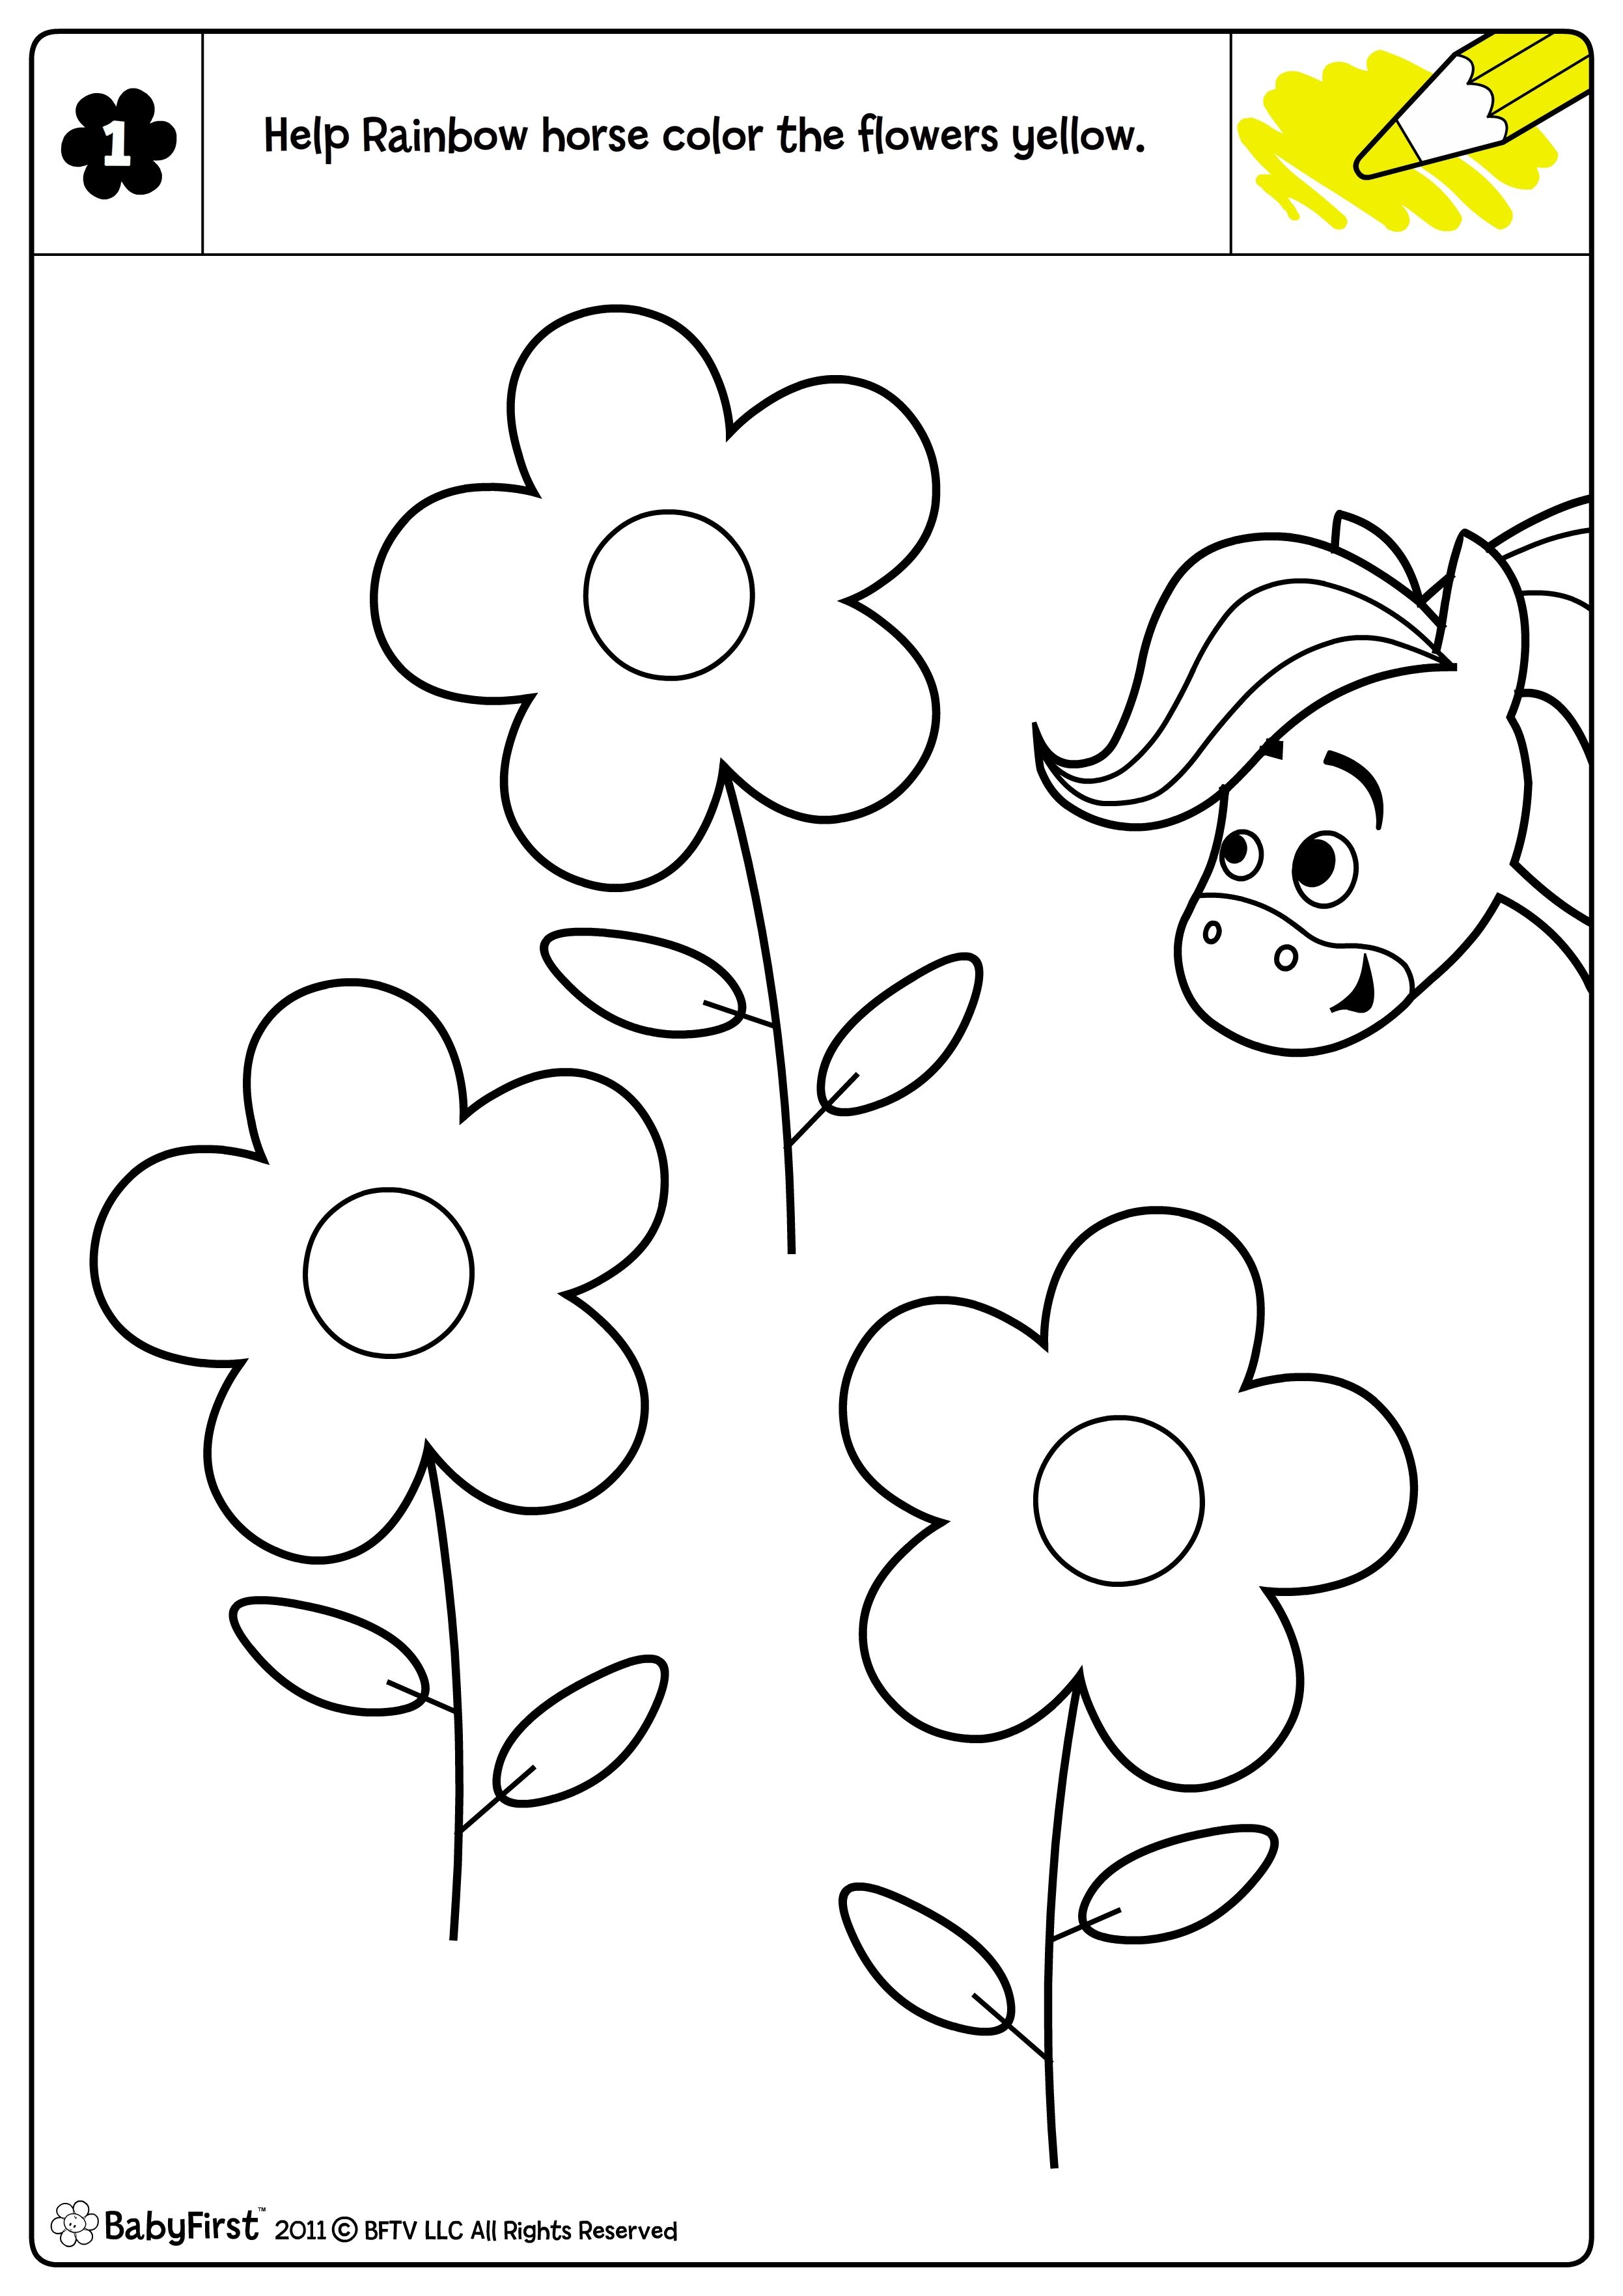 Rainbow Horse Coloring Pages